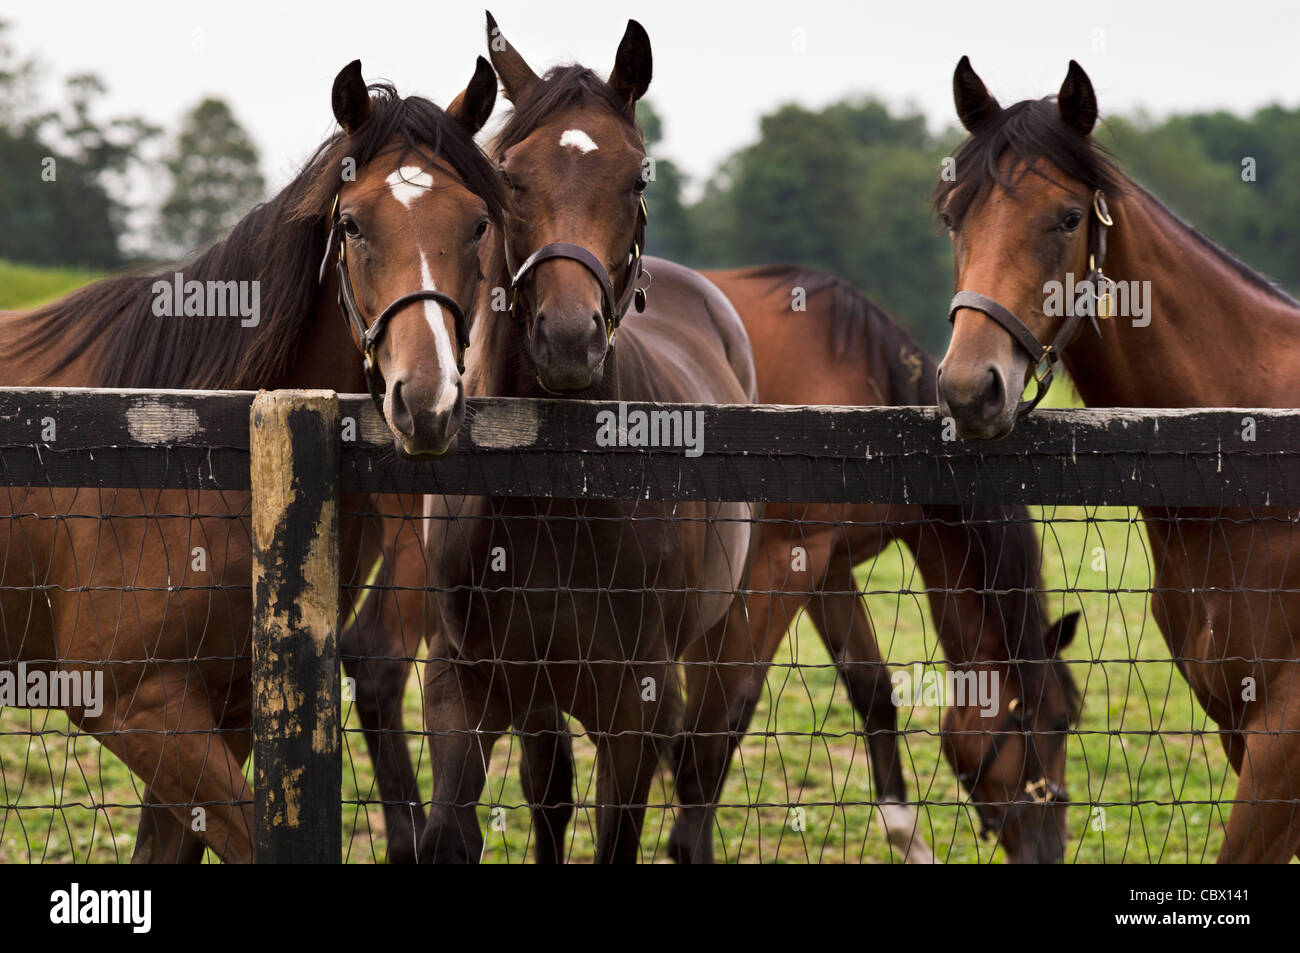 HORSE FARM GAND NEW YORK Photo Stock